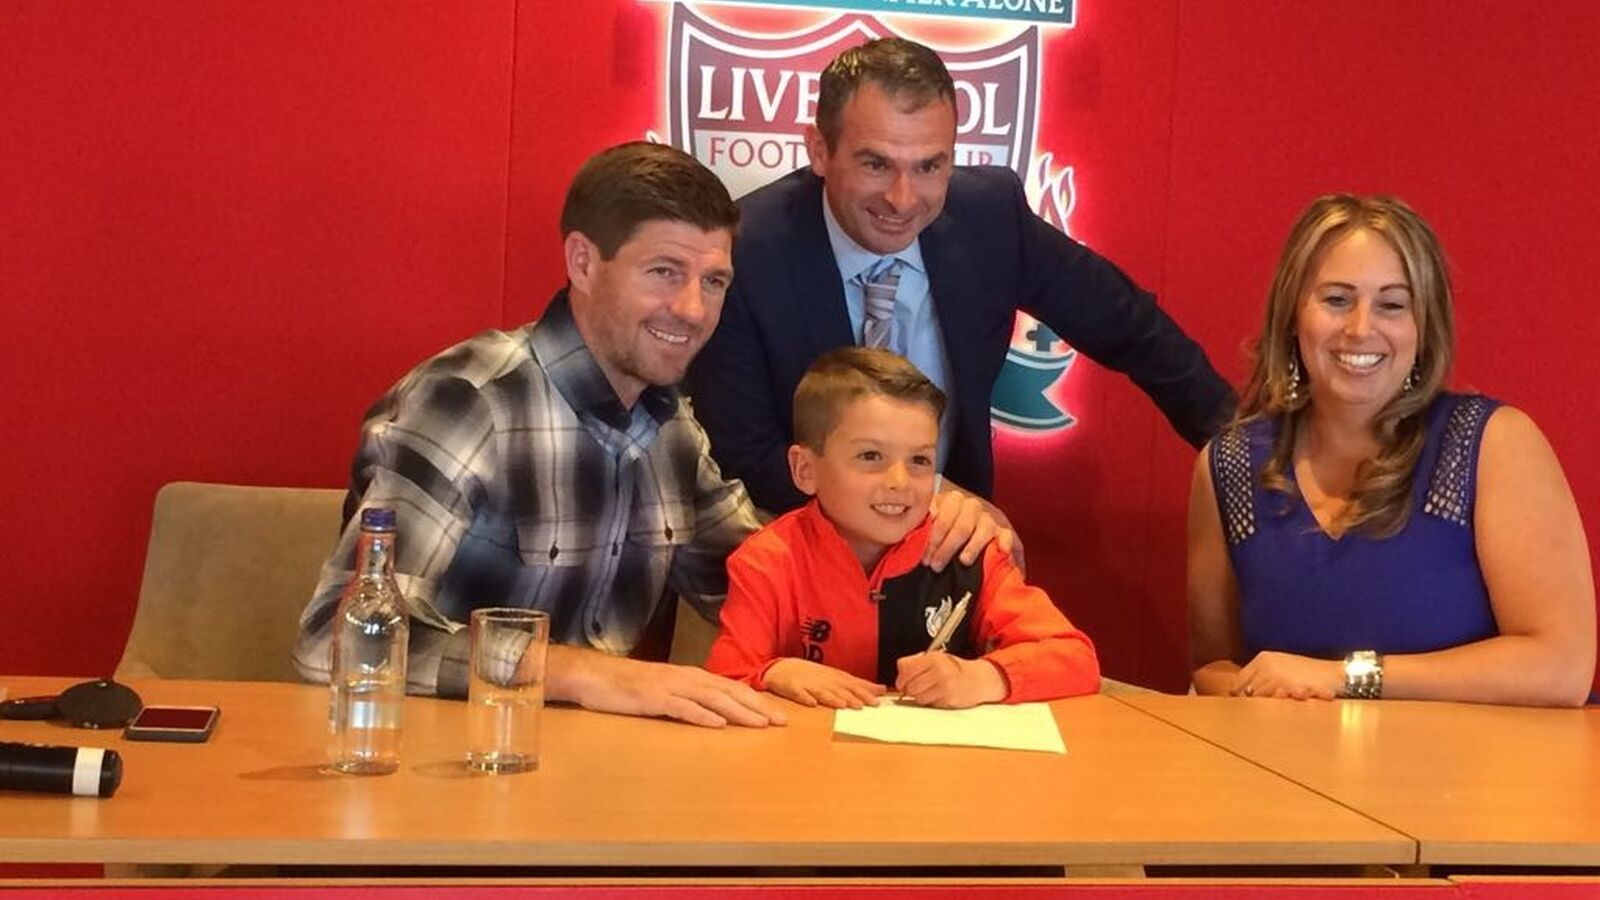 Ormskirk FC Under 8s Player signs for Liverpool FC